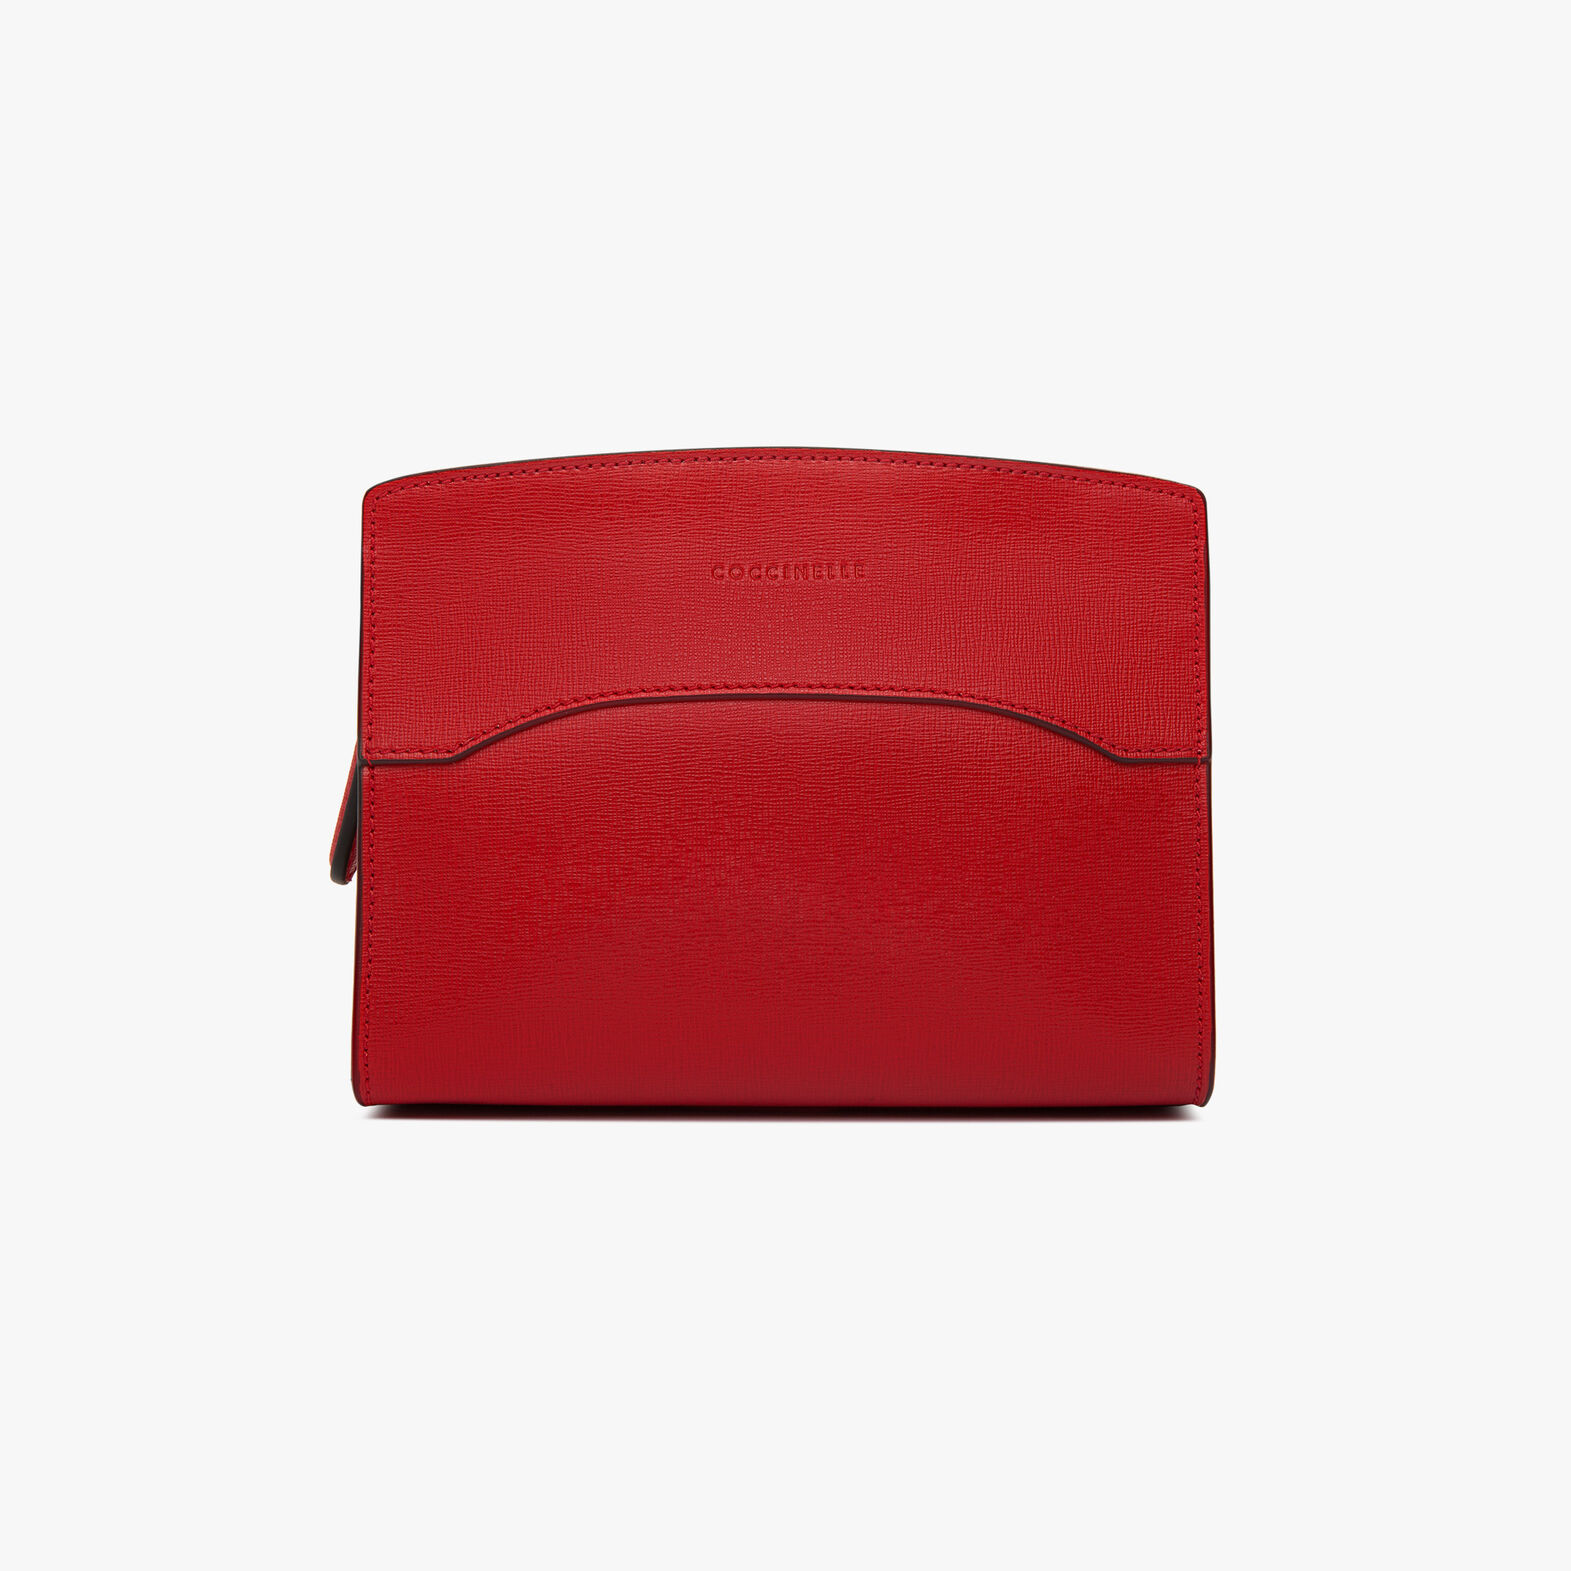 Leather mini clutch